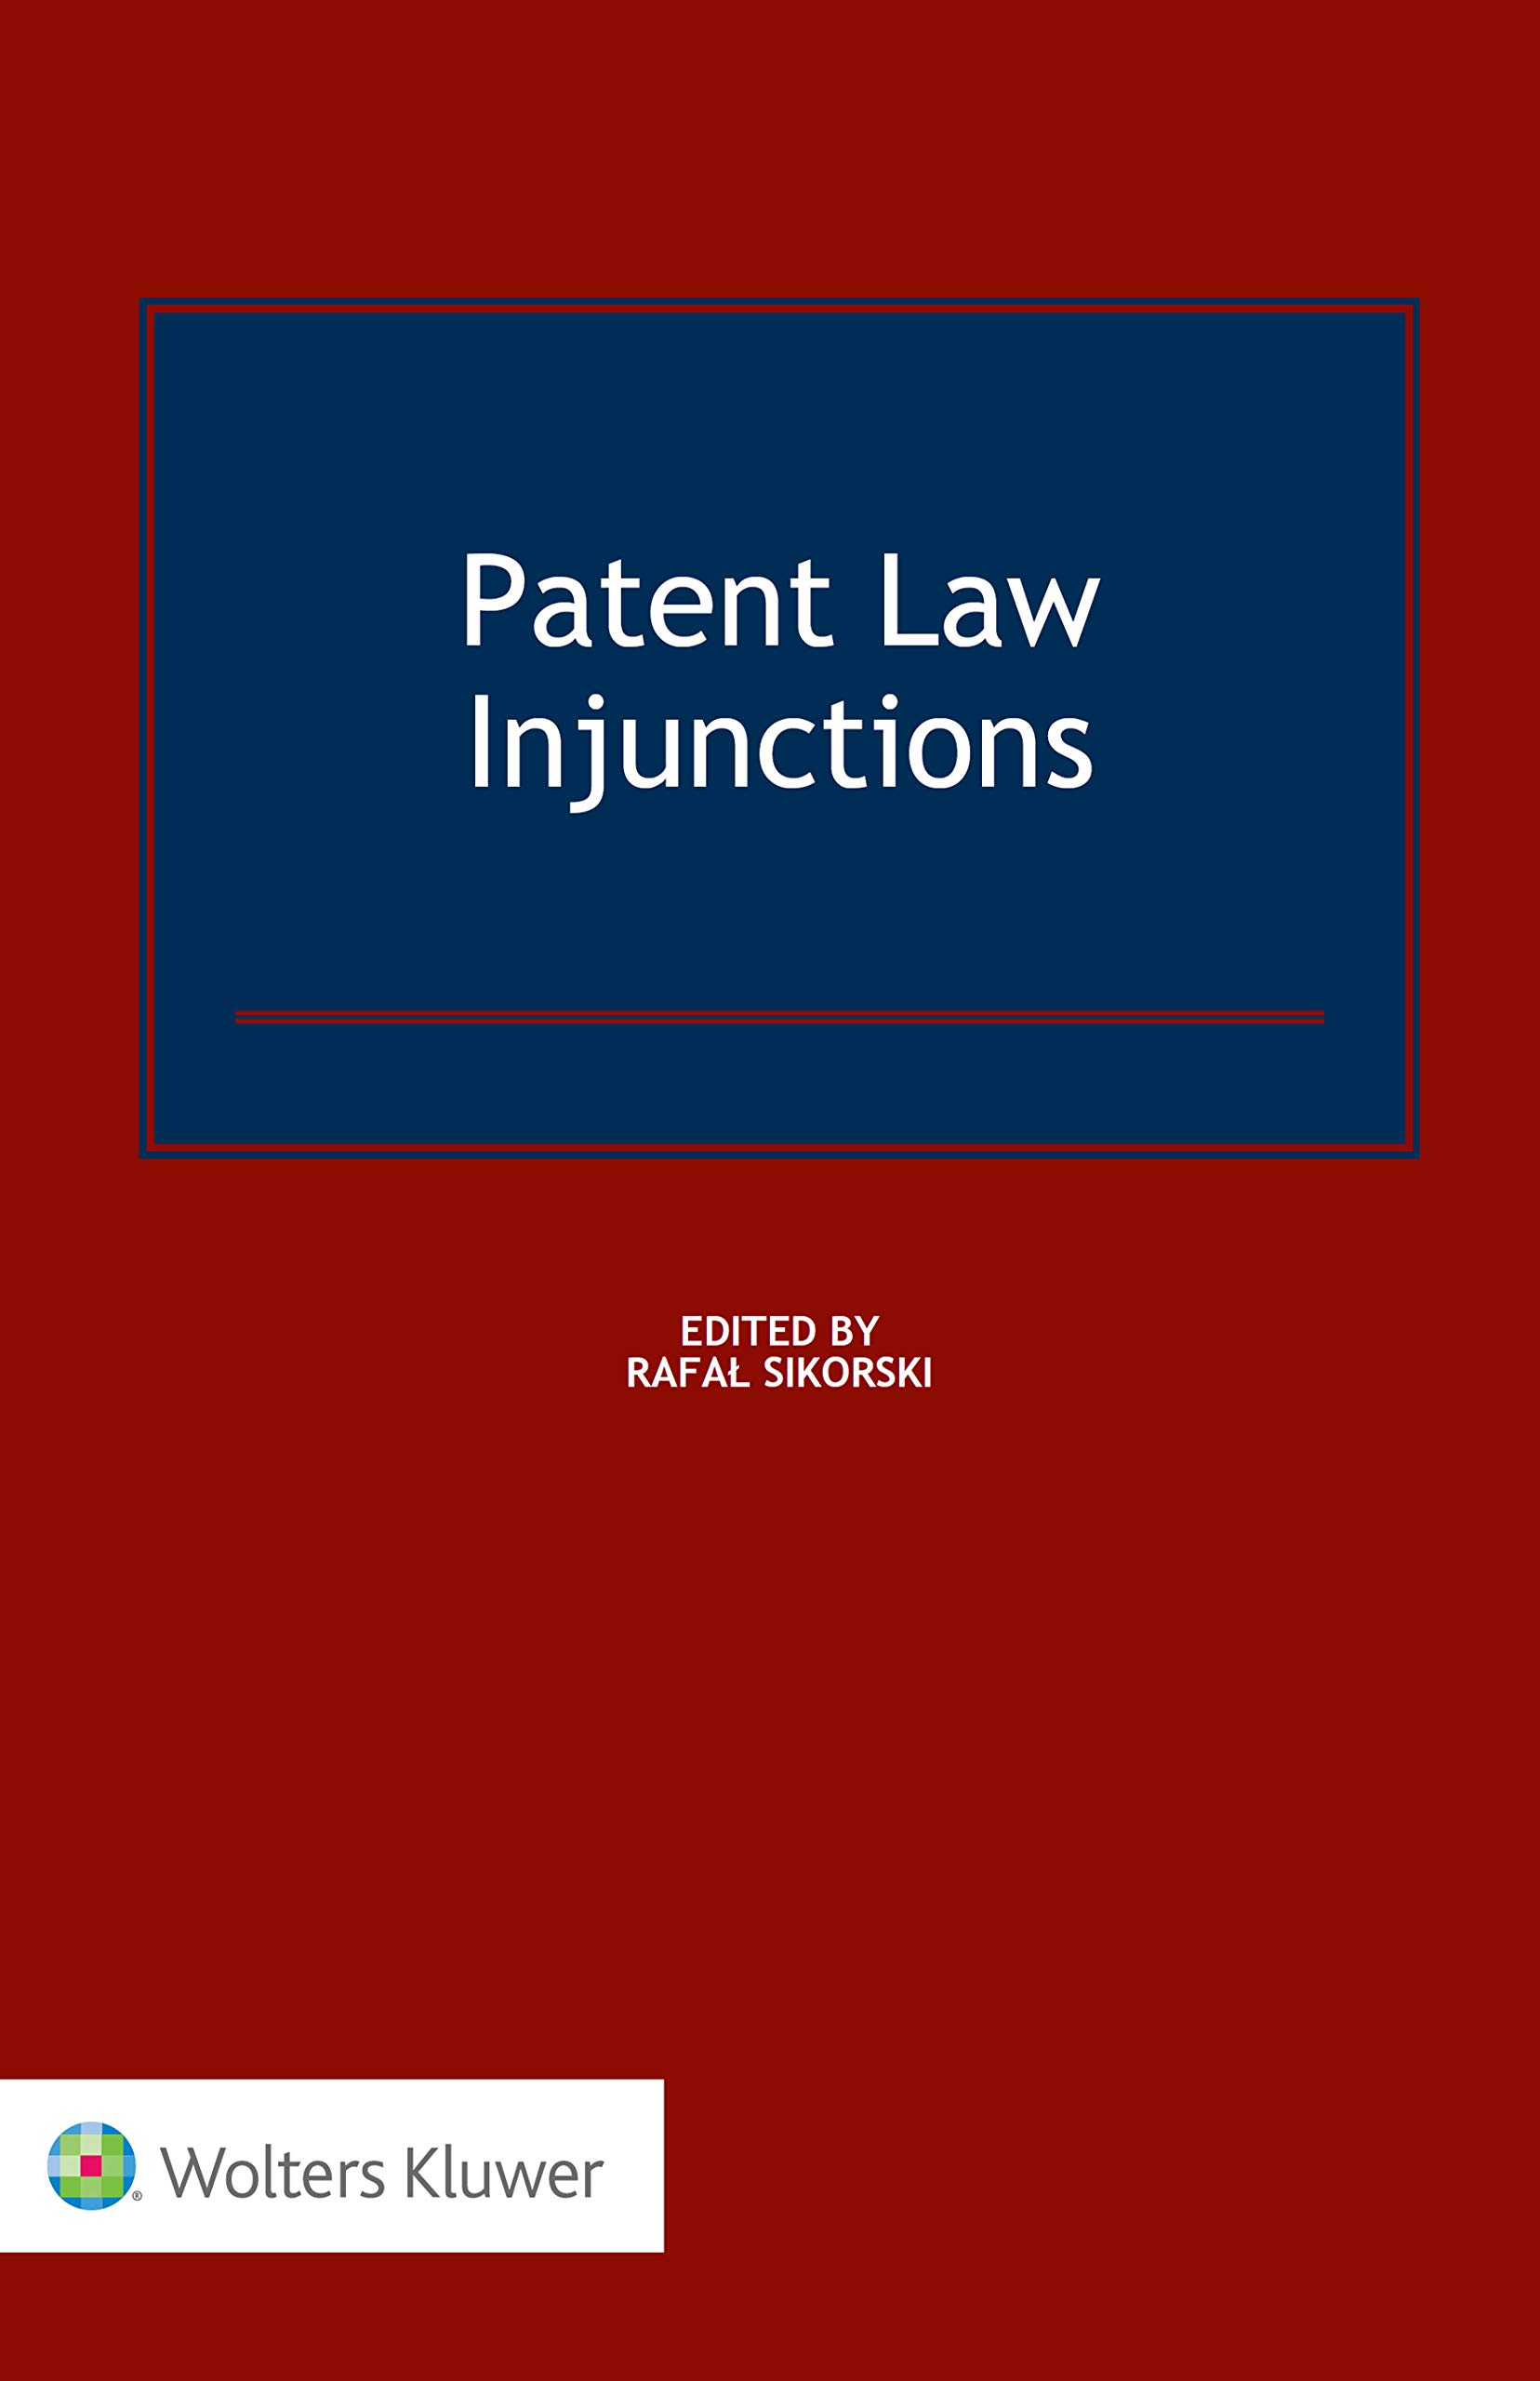 Patent Law Injunctions